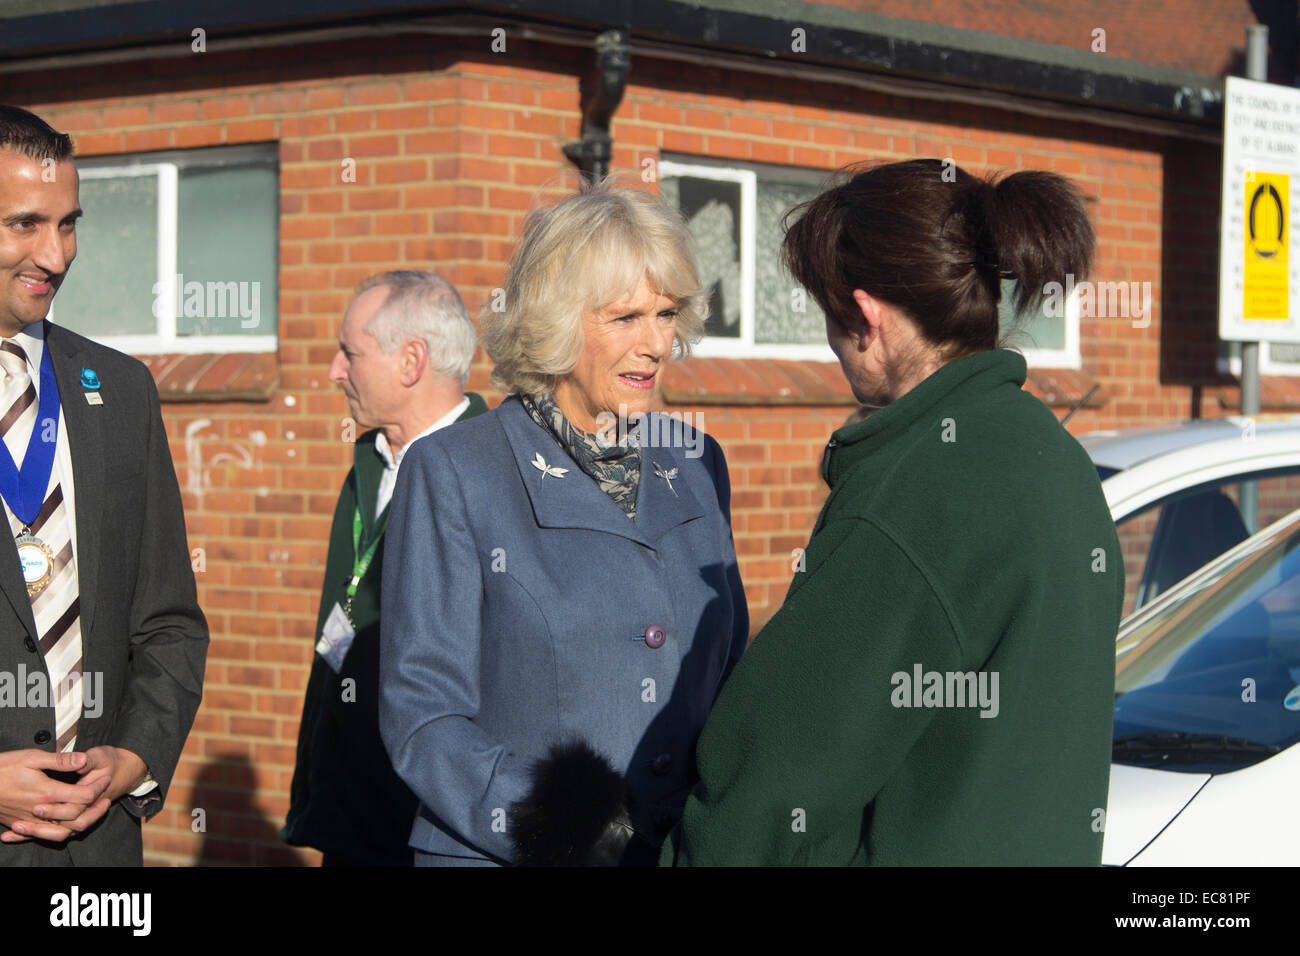 St. Albans, Hertfordshire, UK. 10th Dec, 2014. Camilla, Duchess of Cornwall, undertakes a pre-christmas visit to - Stock Image